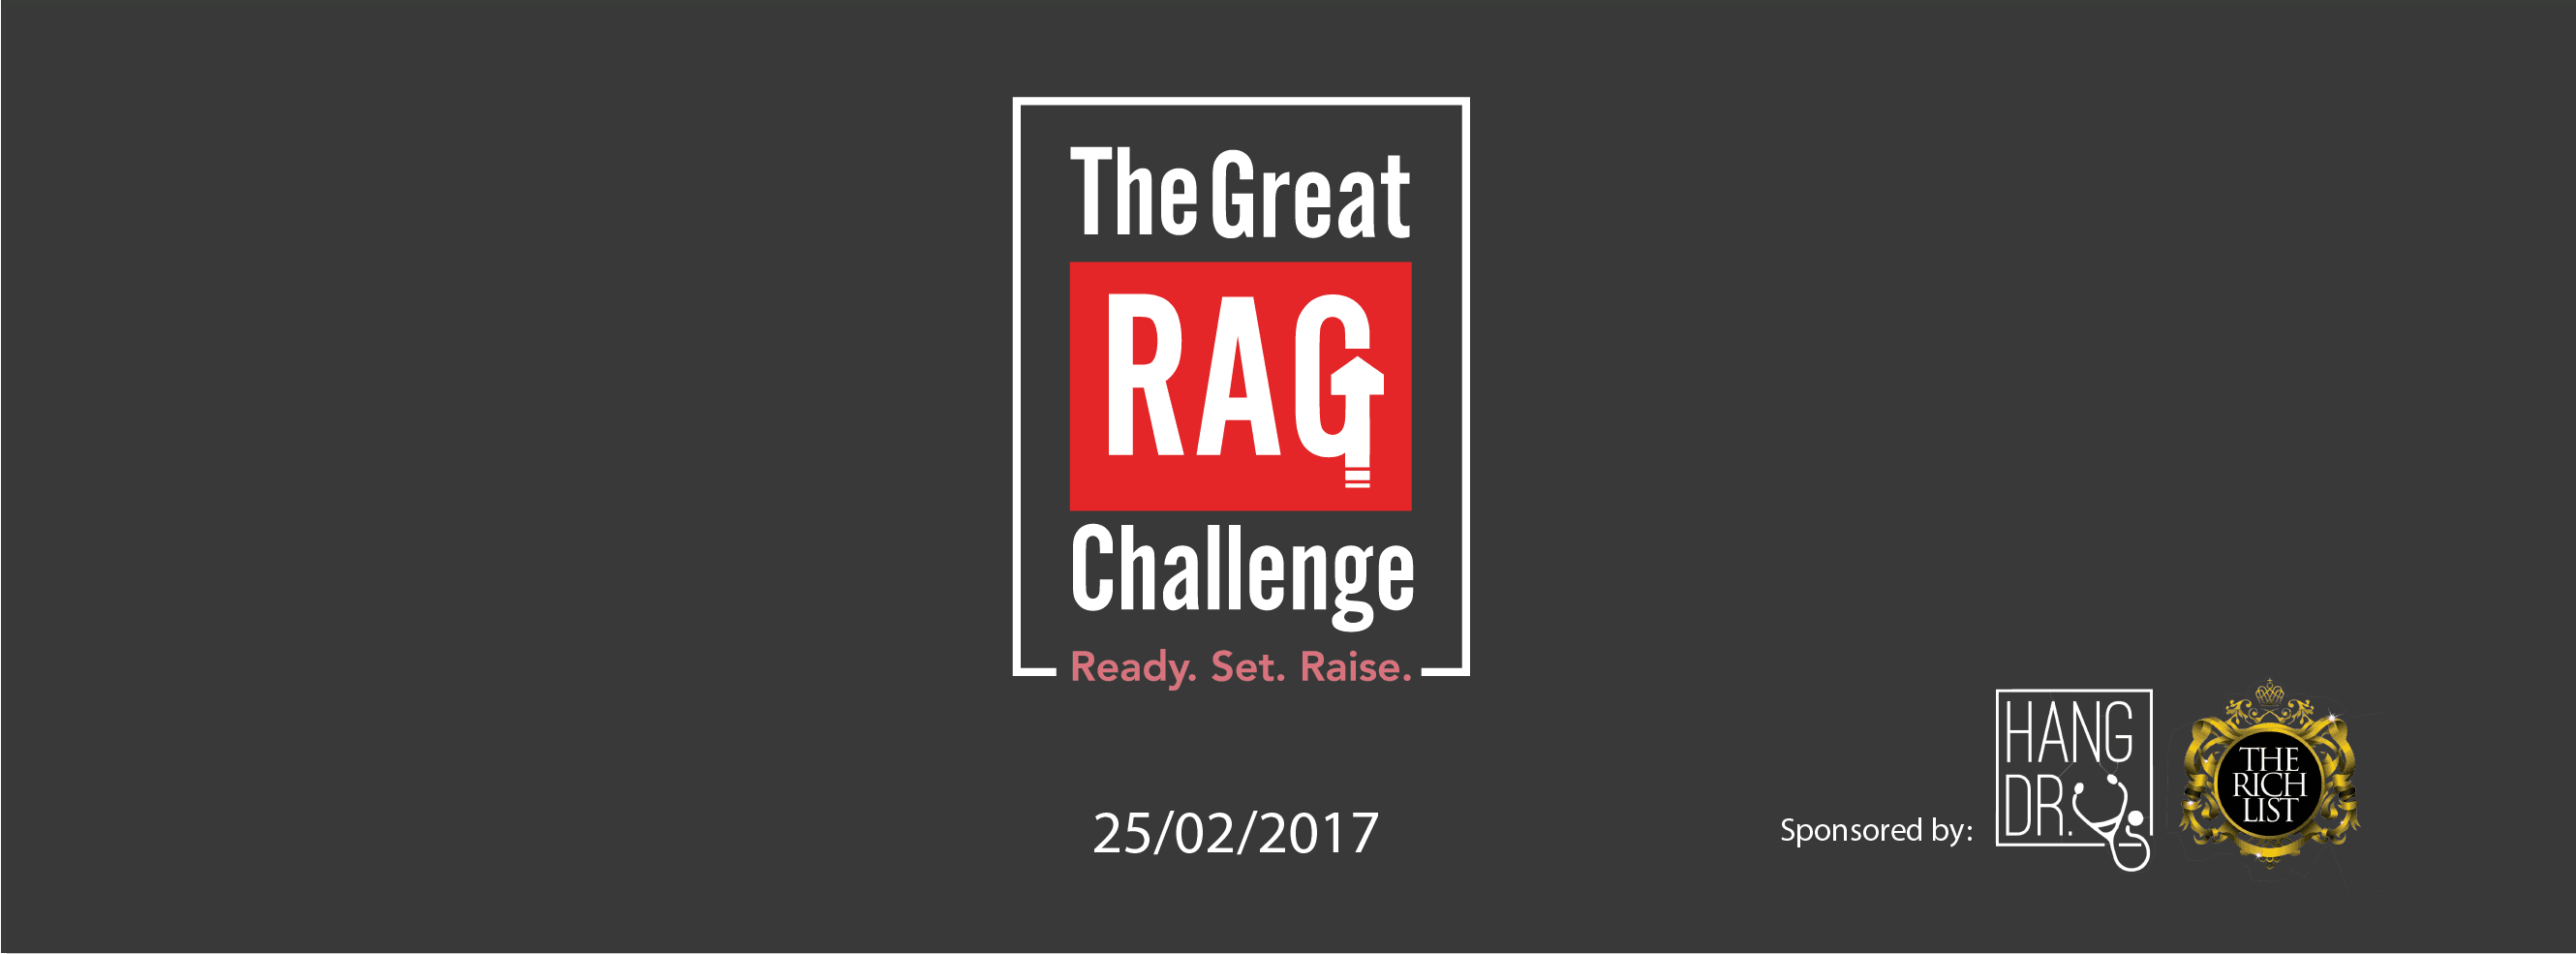 The Great RAG Challenge 2017